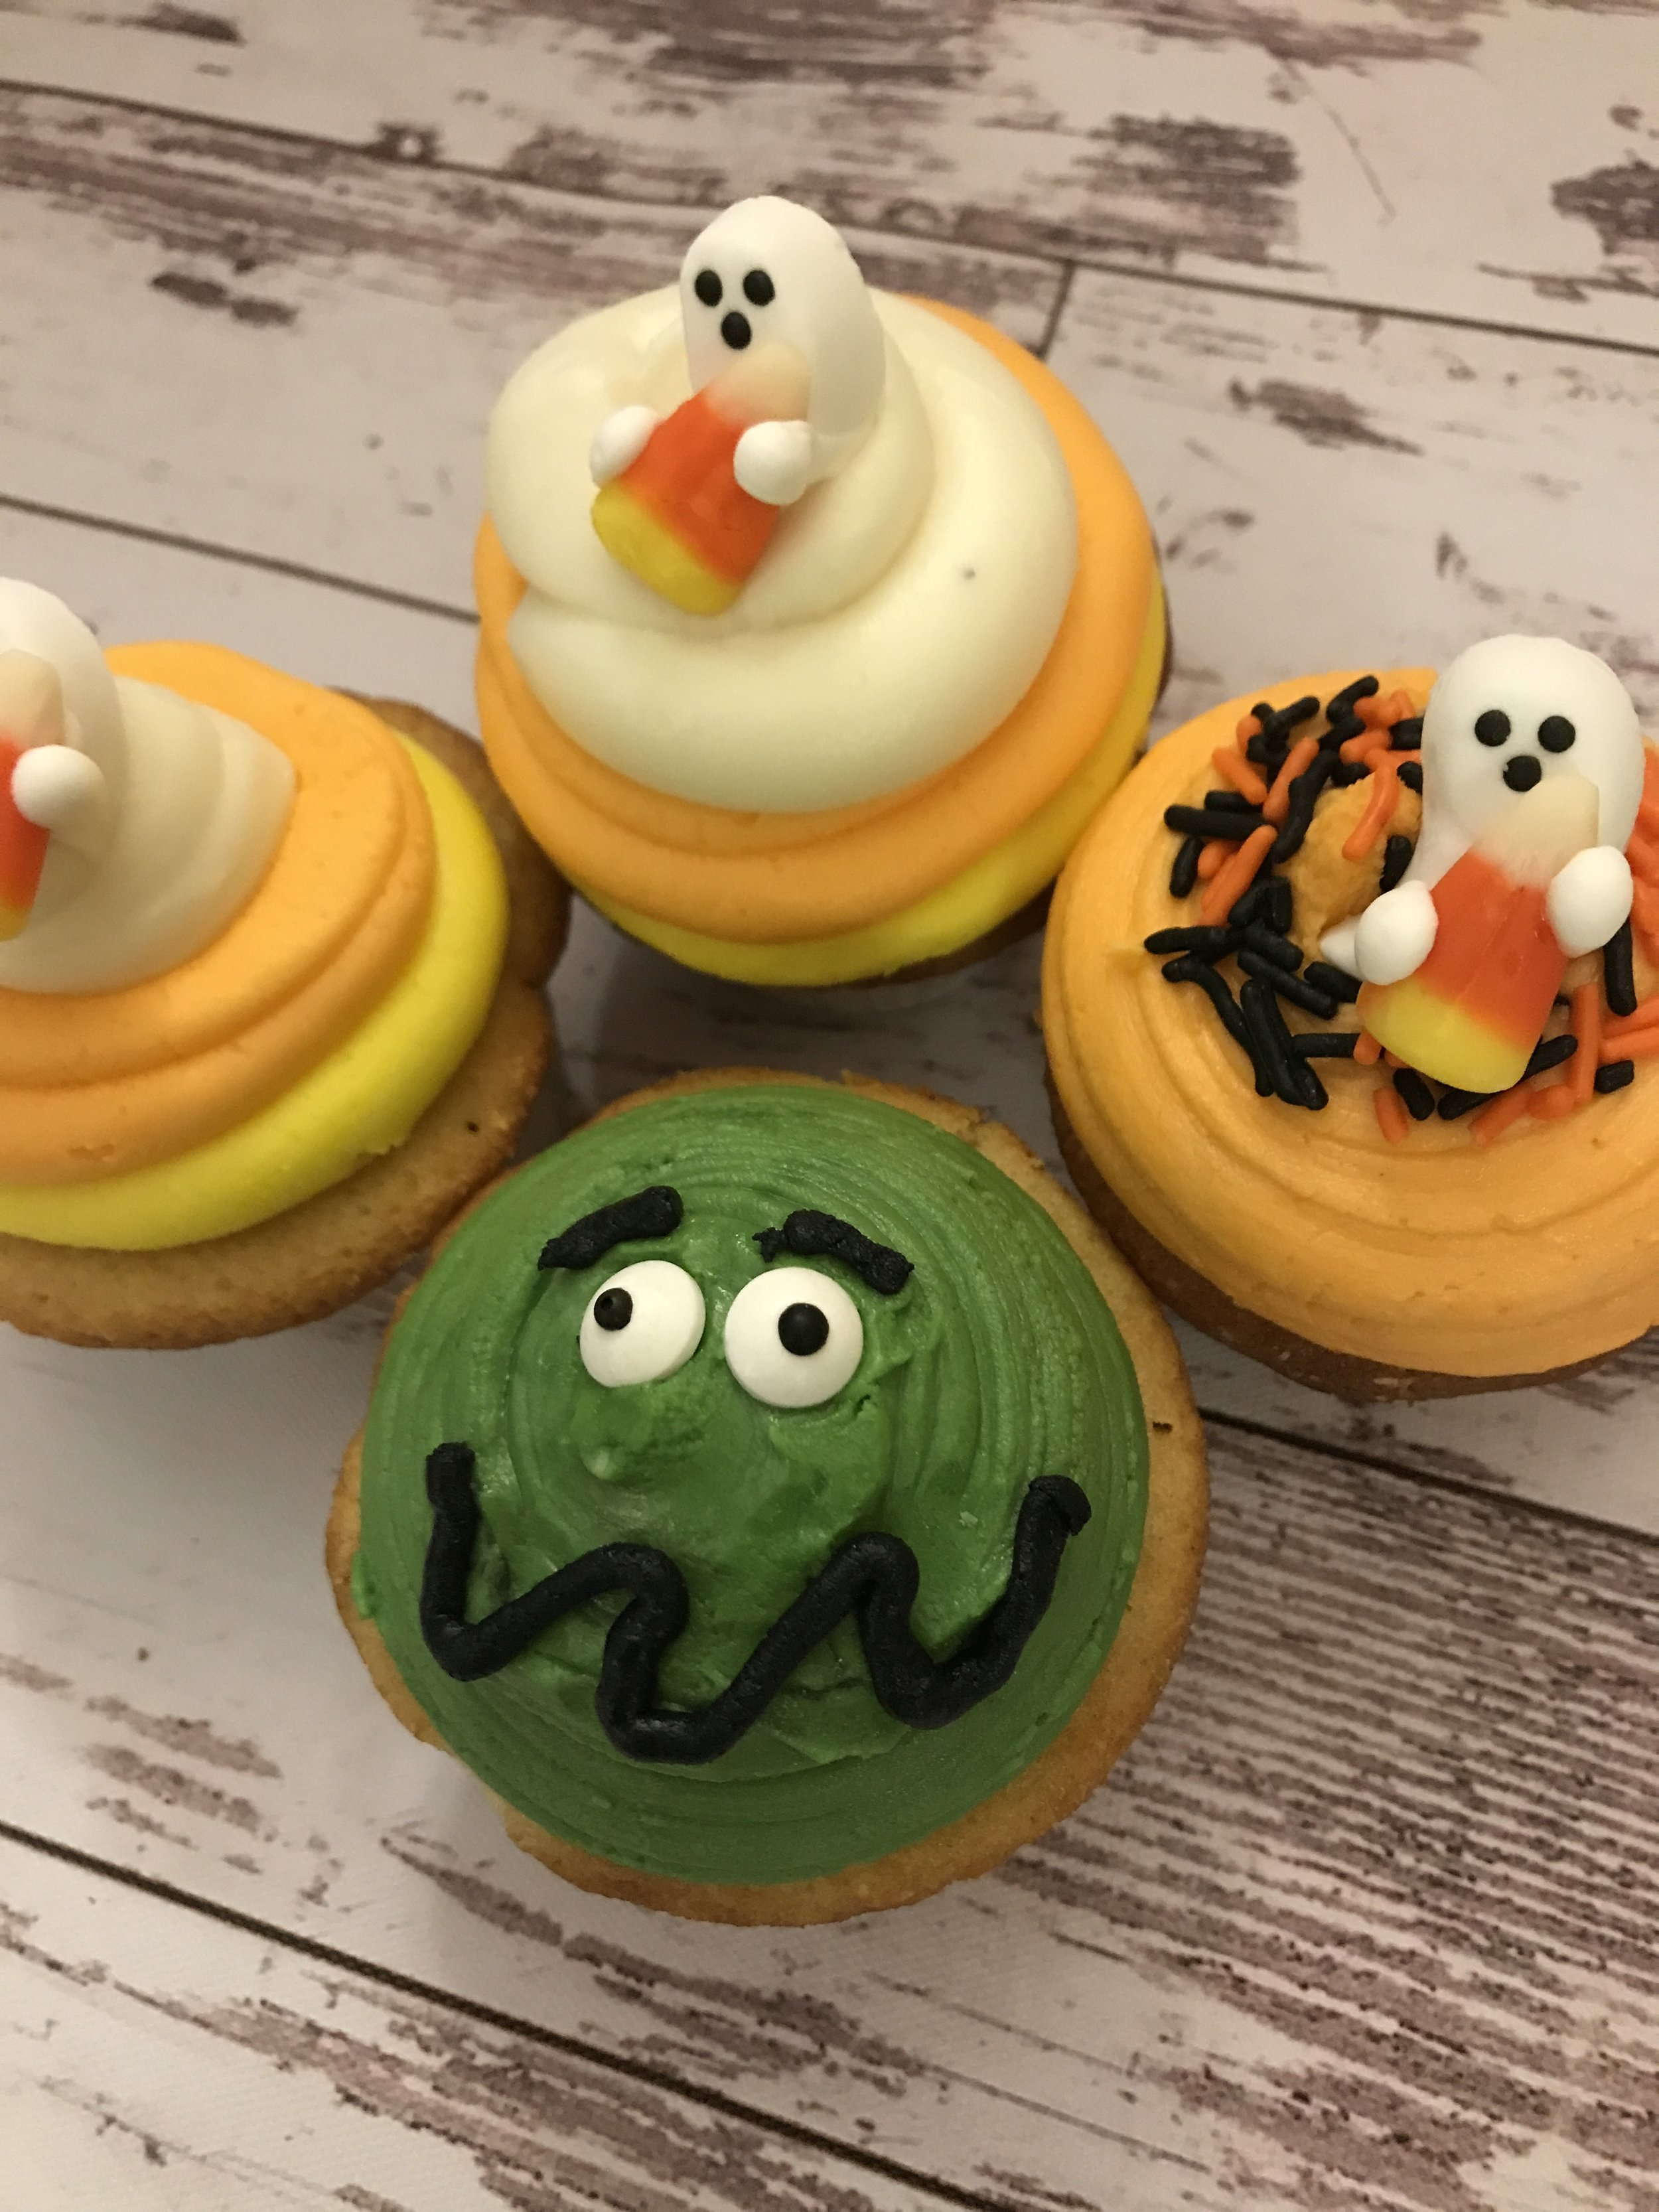 Halloween delights for the kid in all of us!